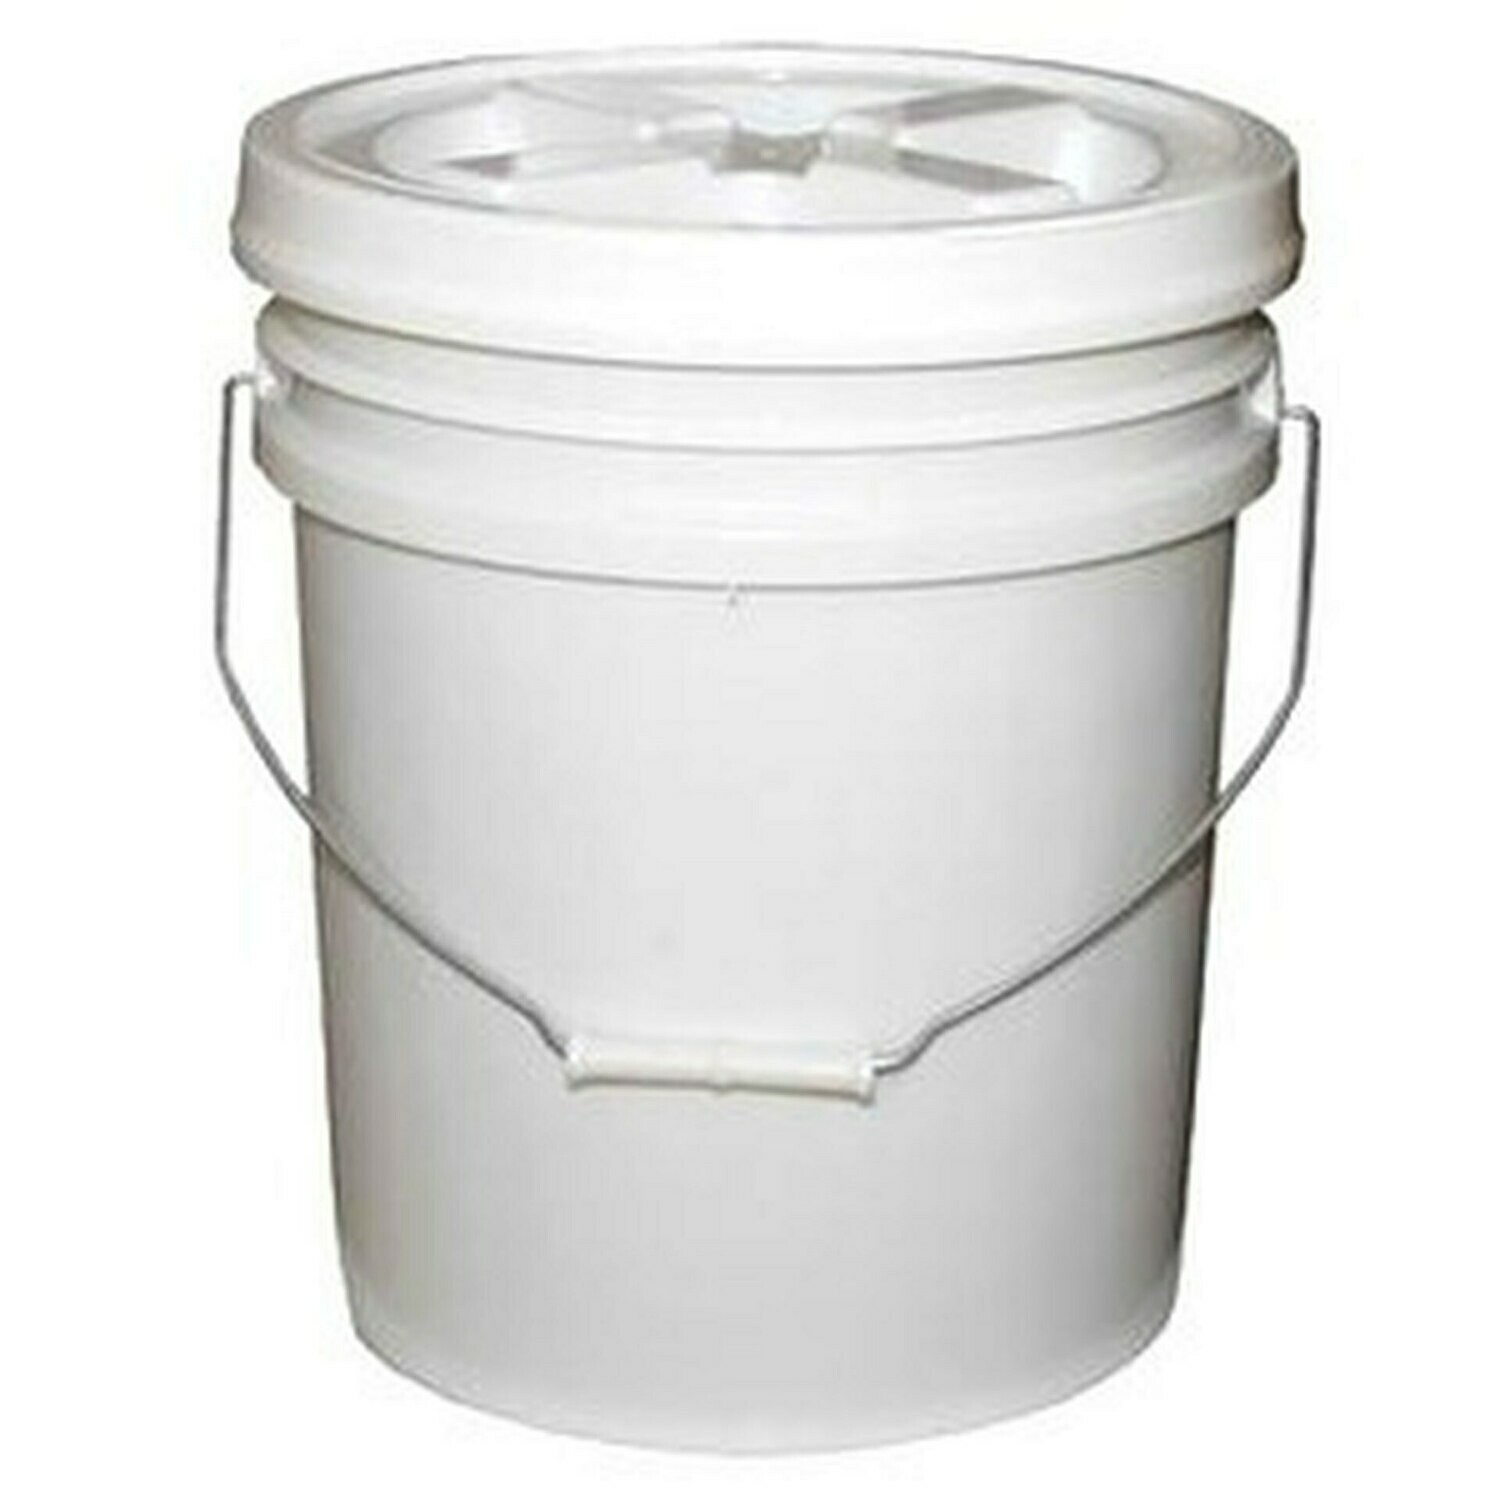 Hood and Duct Degreaser (powdered form) 50lbs (5g Pail)